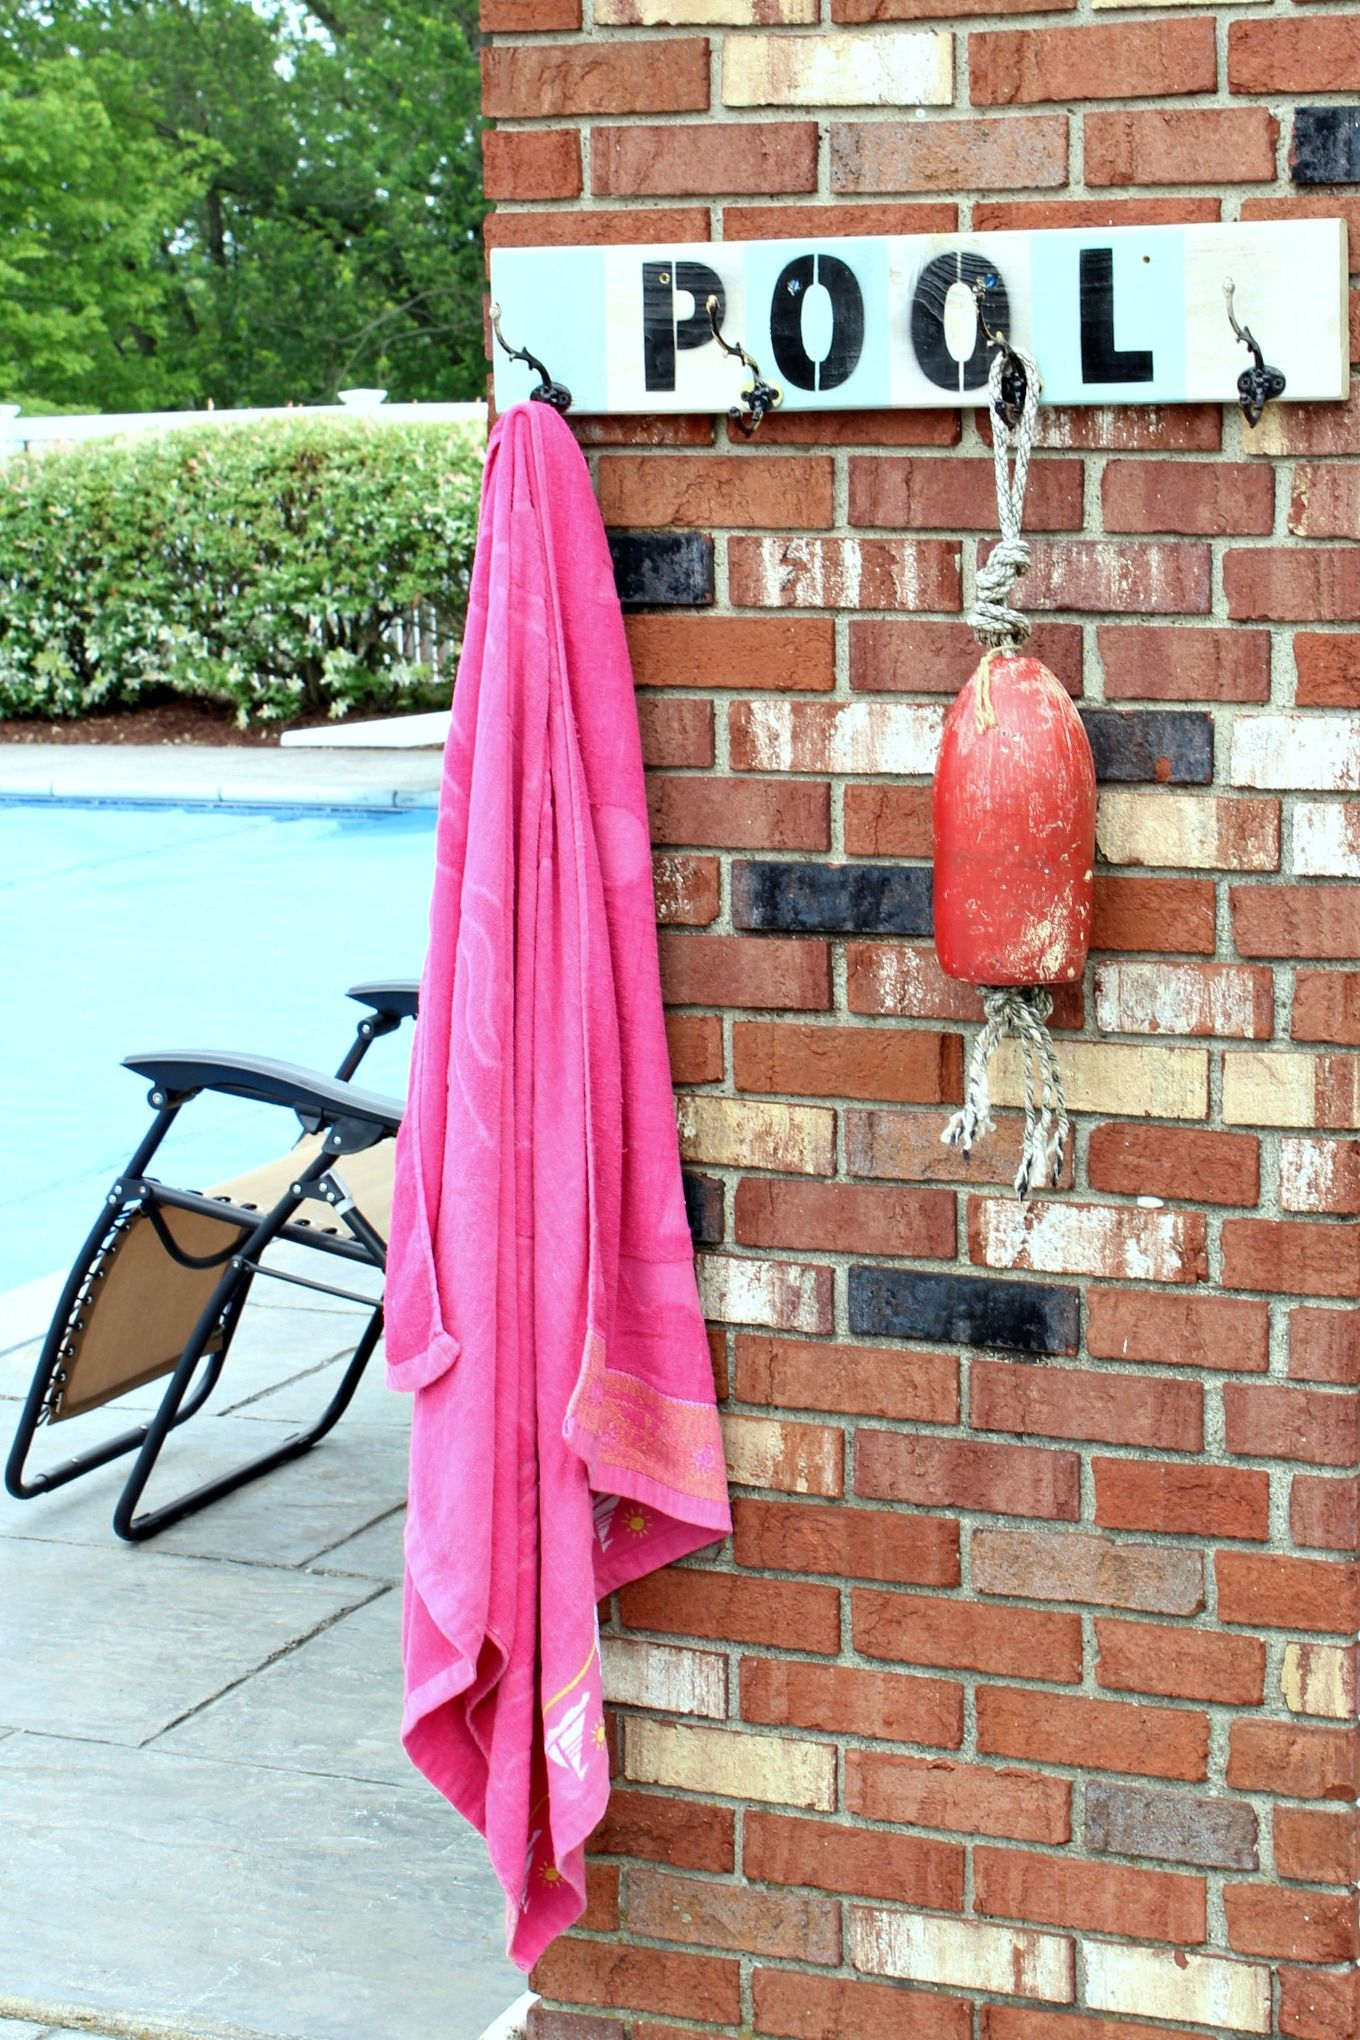 Diy Towel Hanger For The Pool House Or Coat Rack Inside Your Home